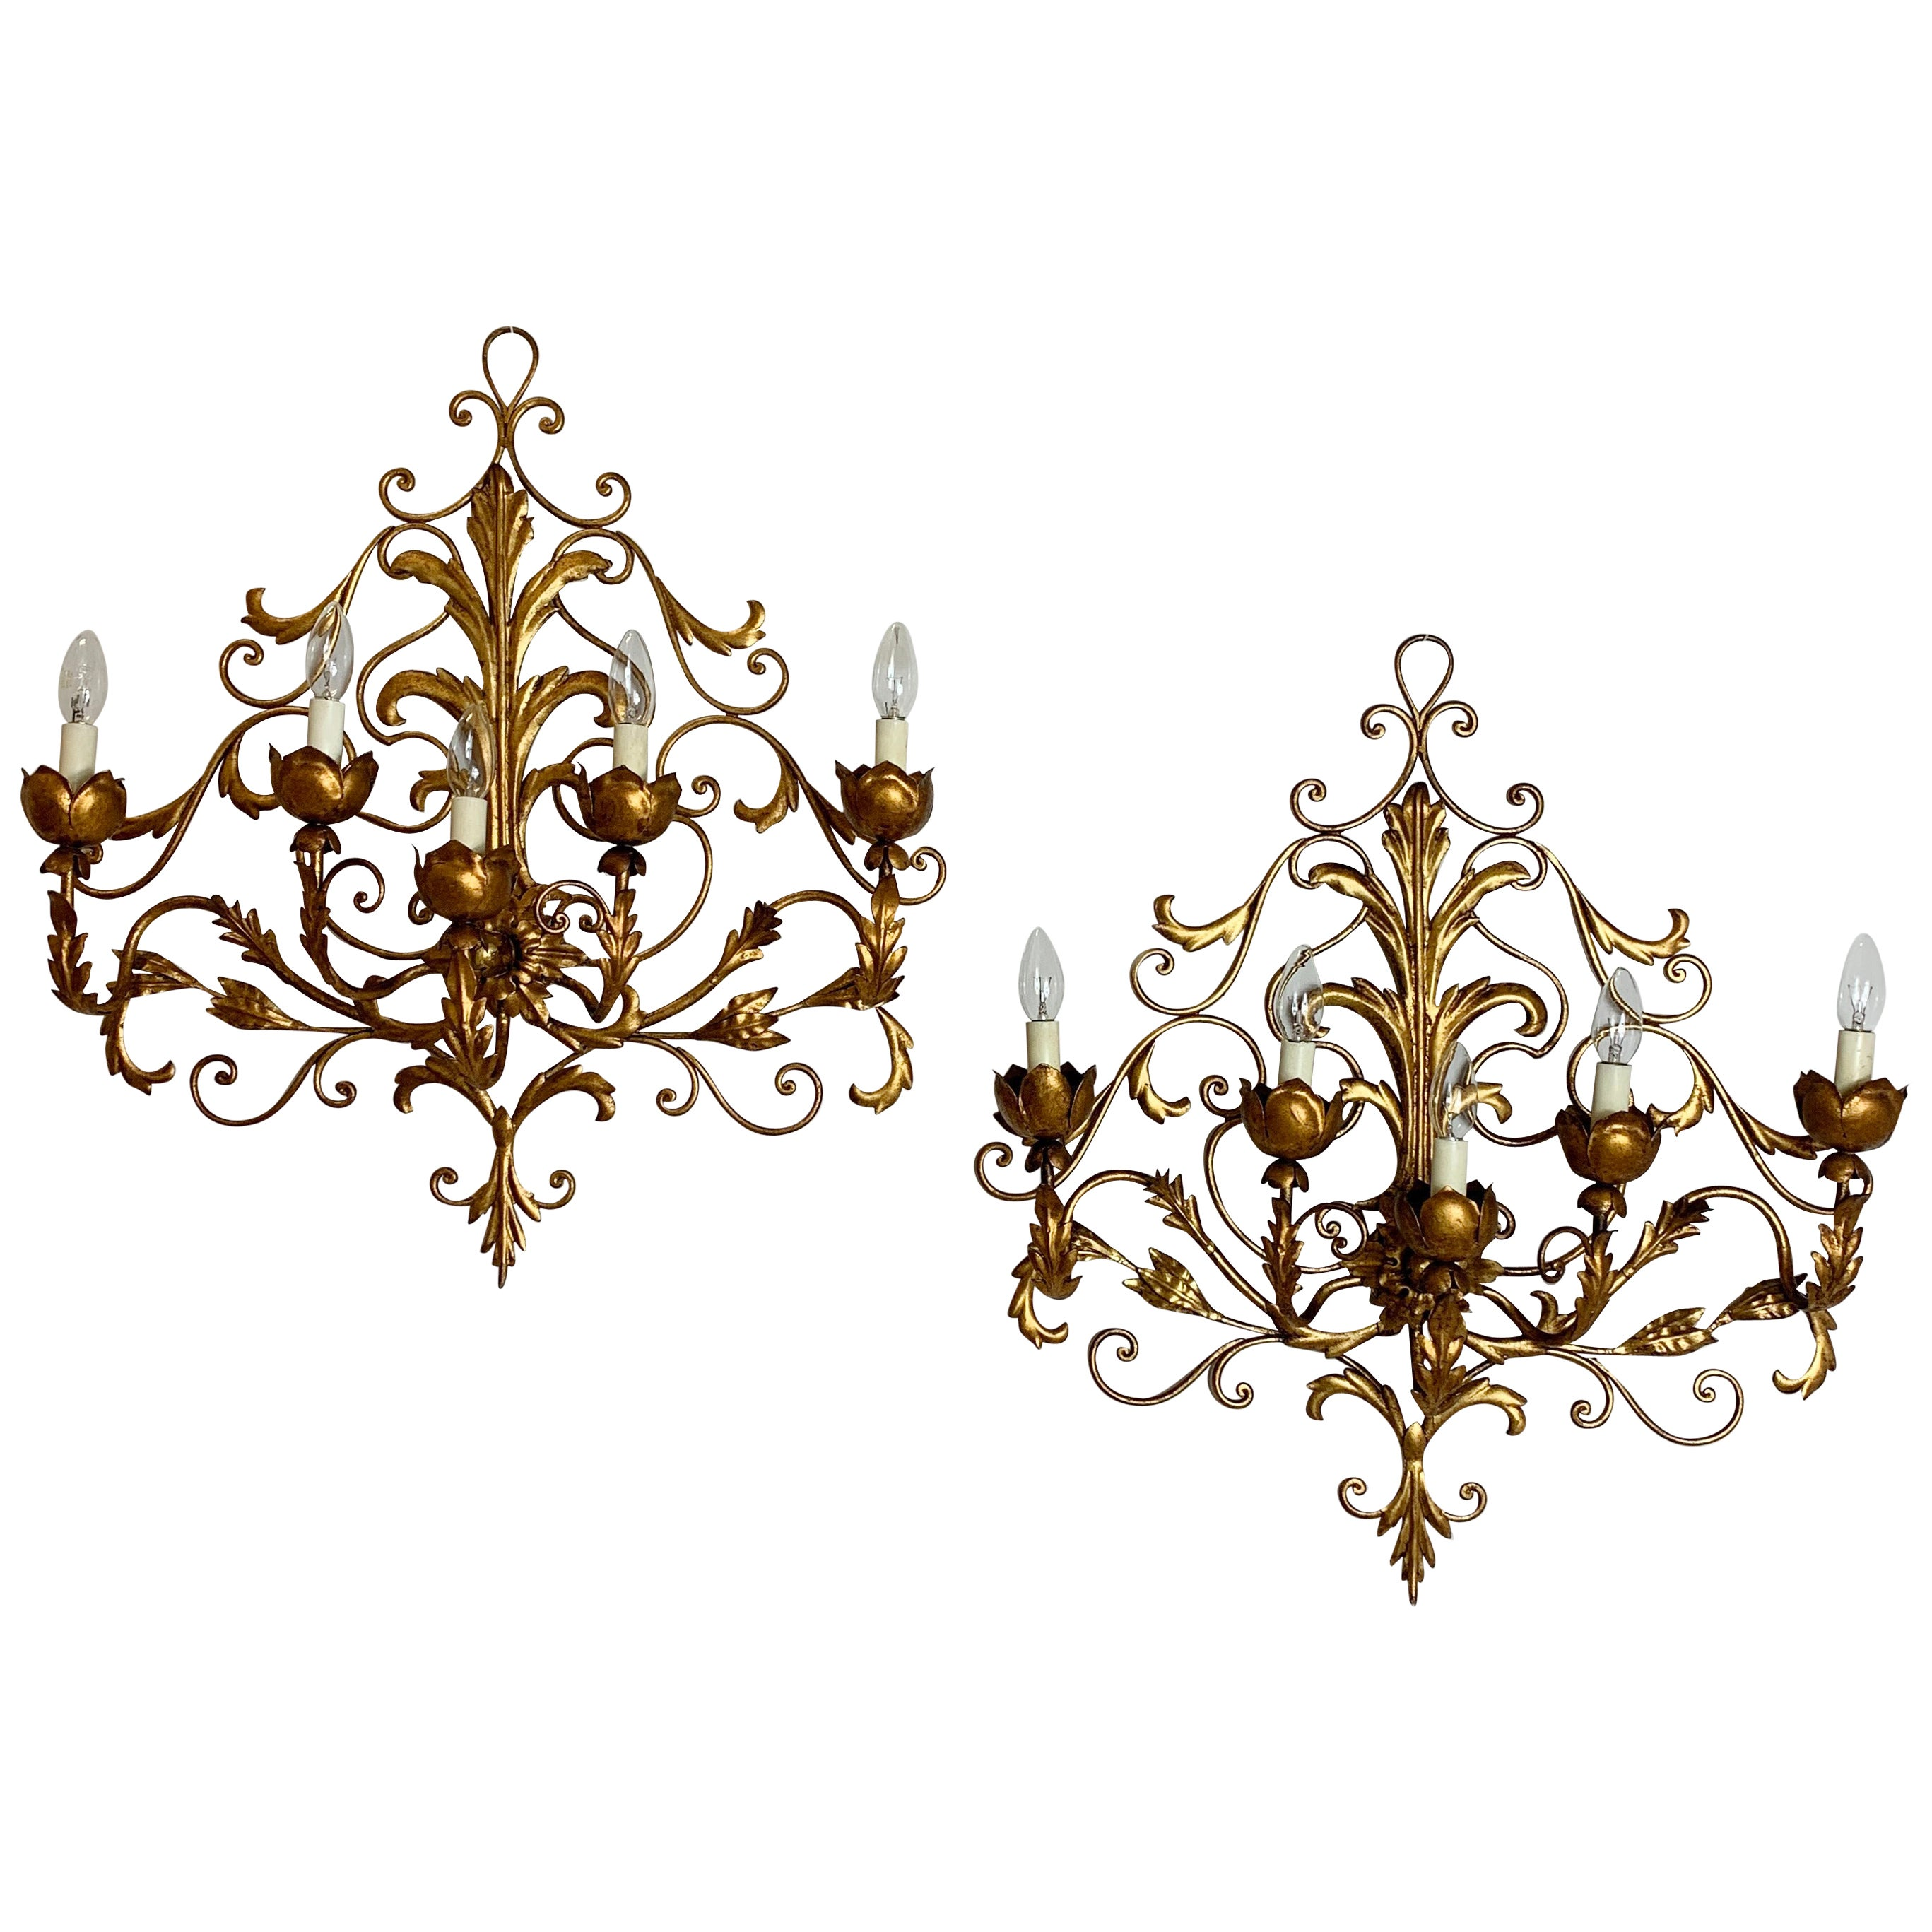 Pair of Large Palladio Wall Sconce's, Italy, 1960s